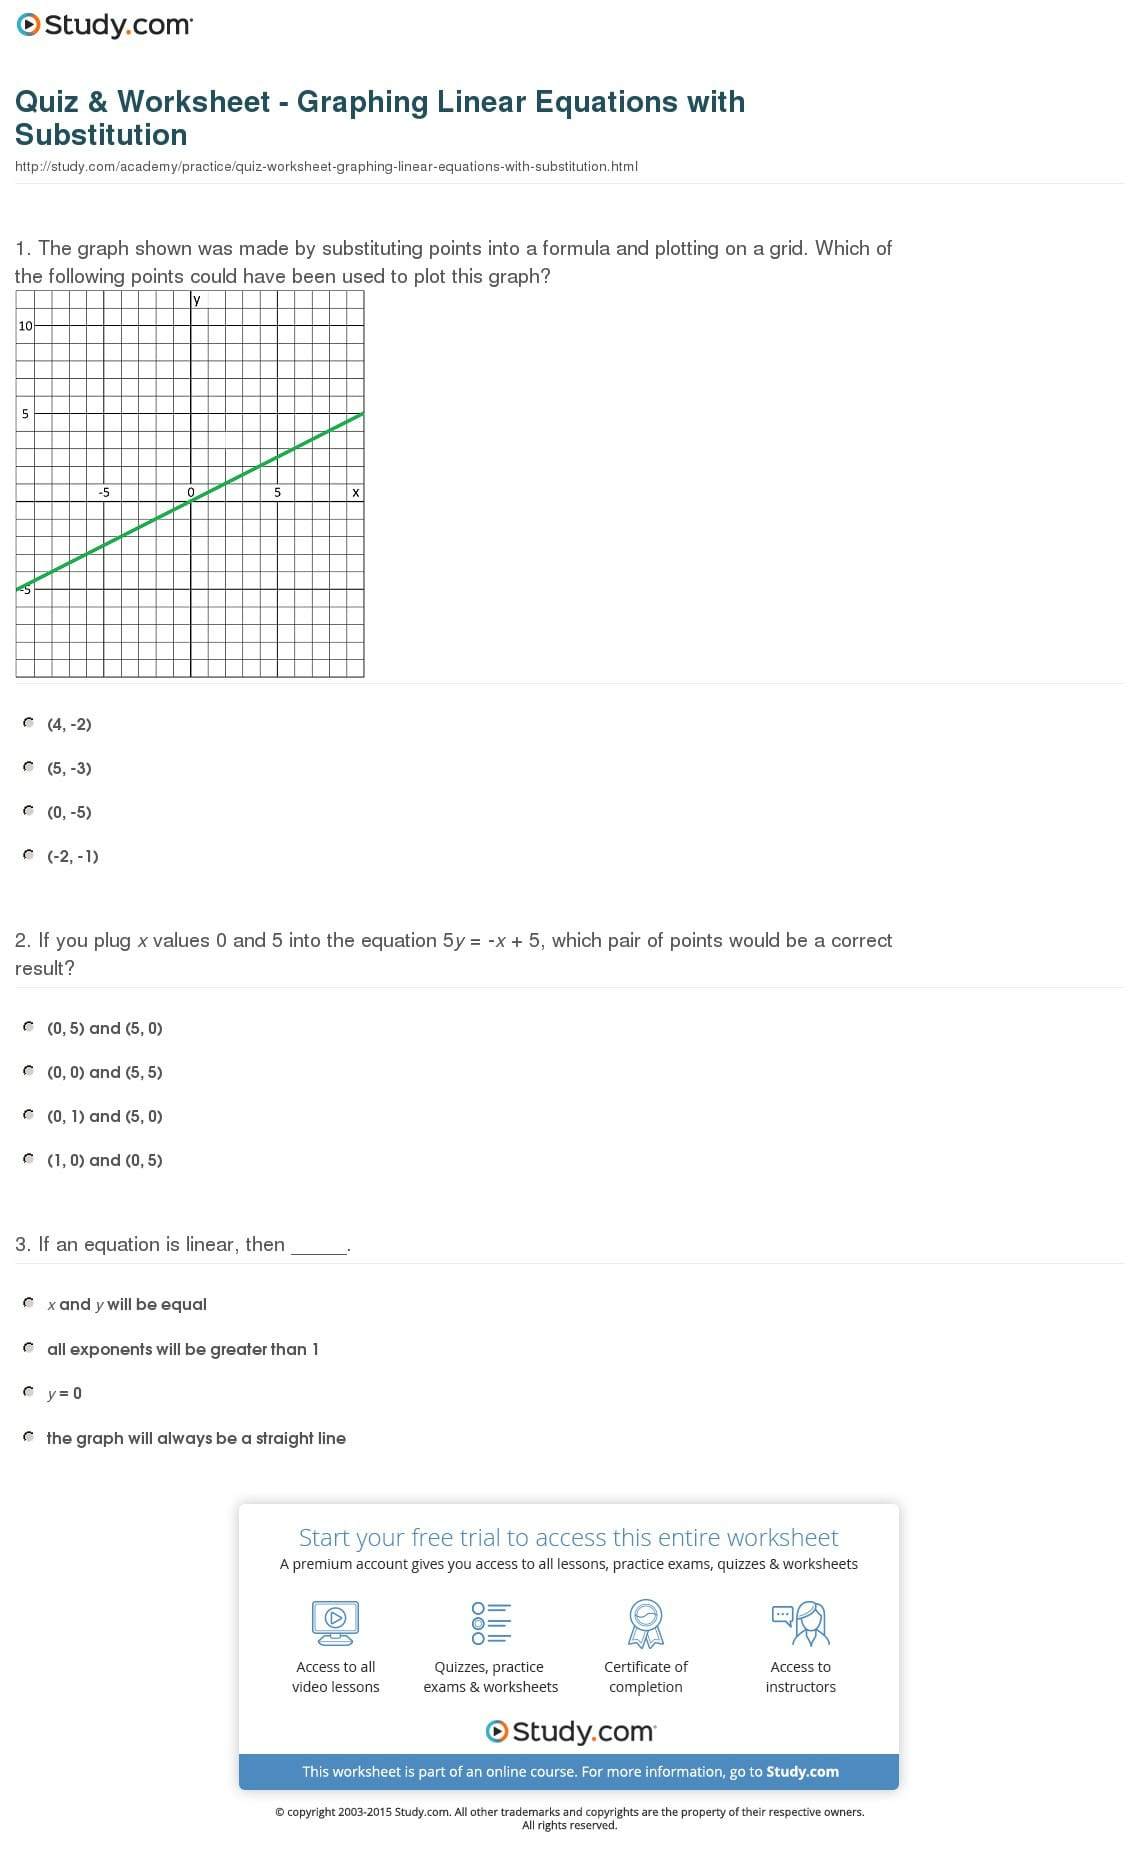 Quiz Worksheet Graphing Linear Equations With